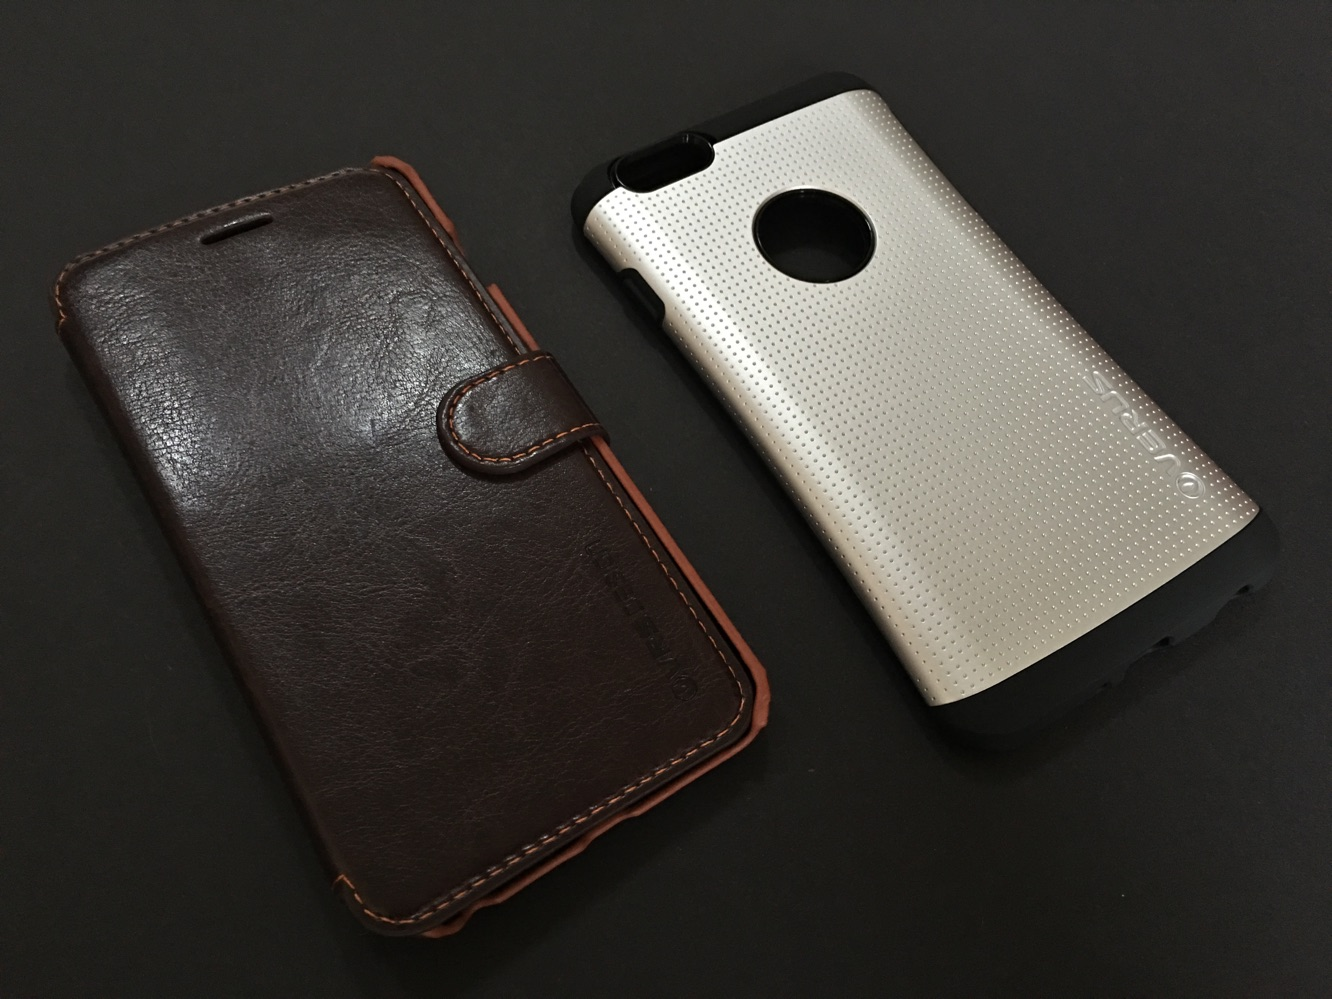 Review: VRS Design Layered Dandy + Thor for iPhone 6/6s Plus